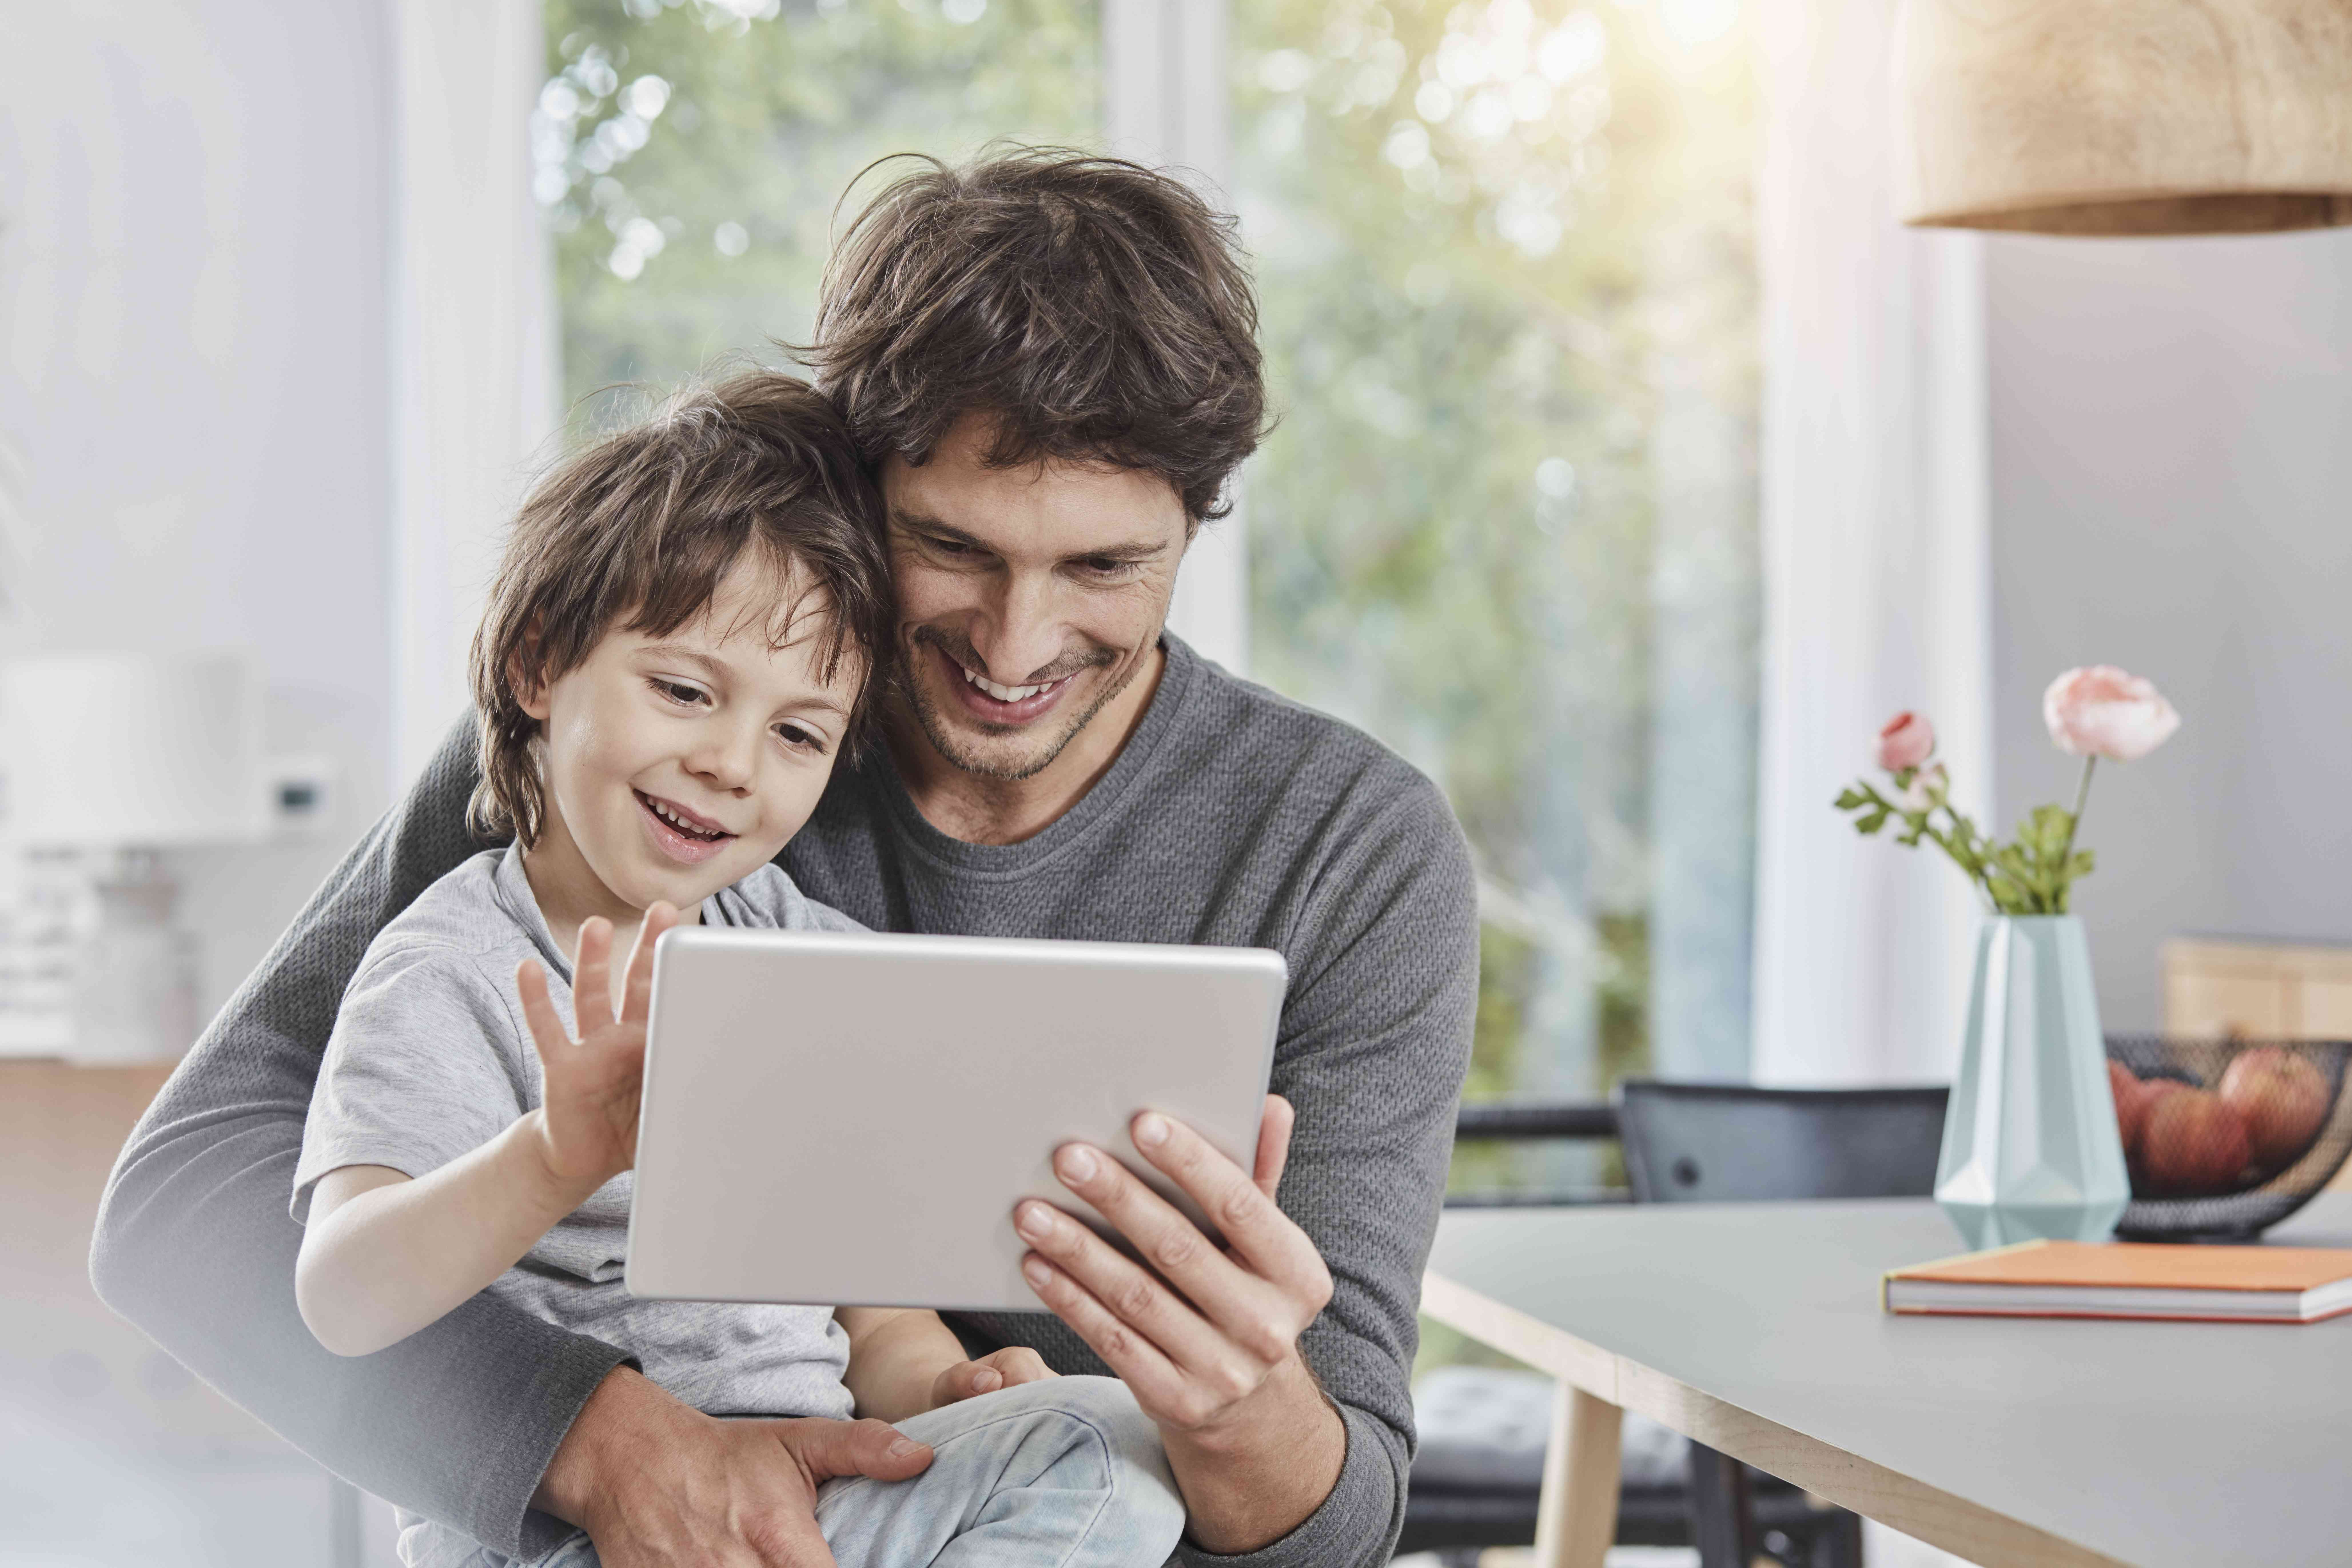 Father and son using an autism app on a tablet together